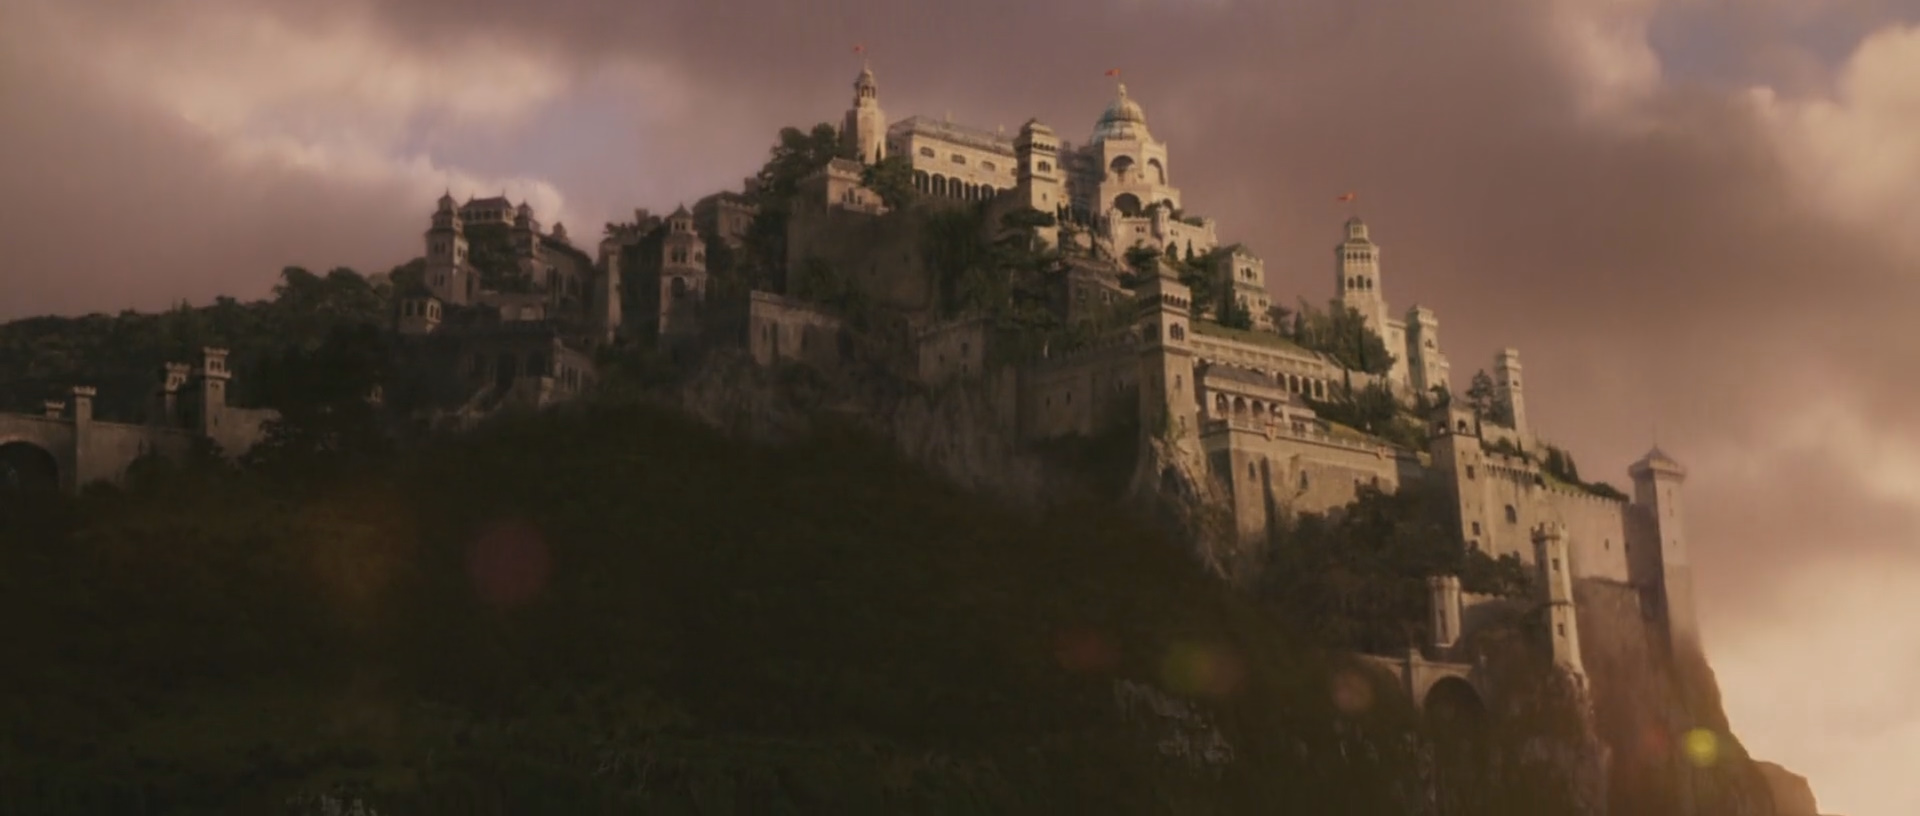 categorycastles the chronicles of narnia wiki fandom